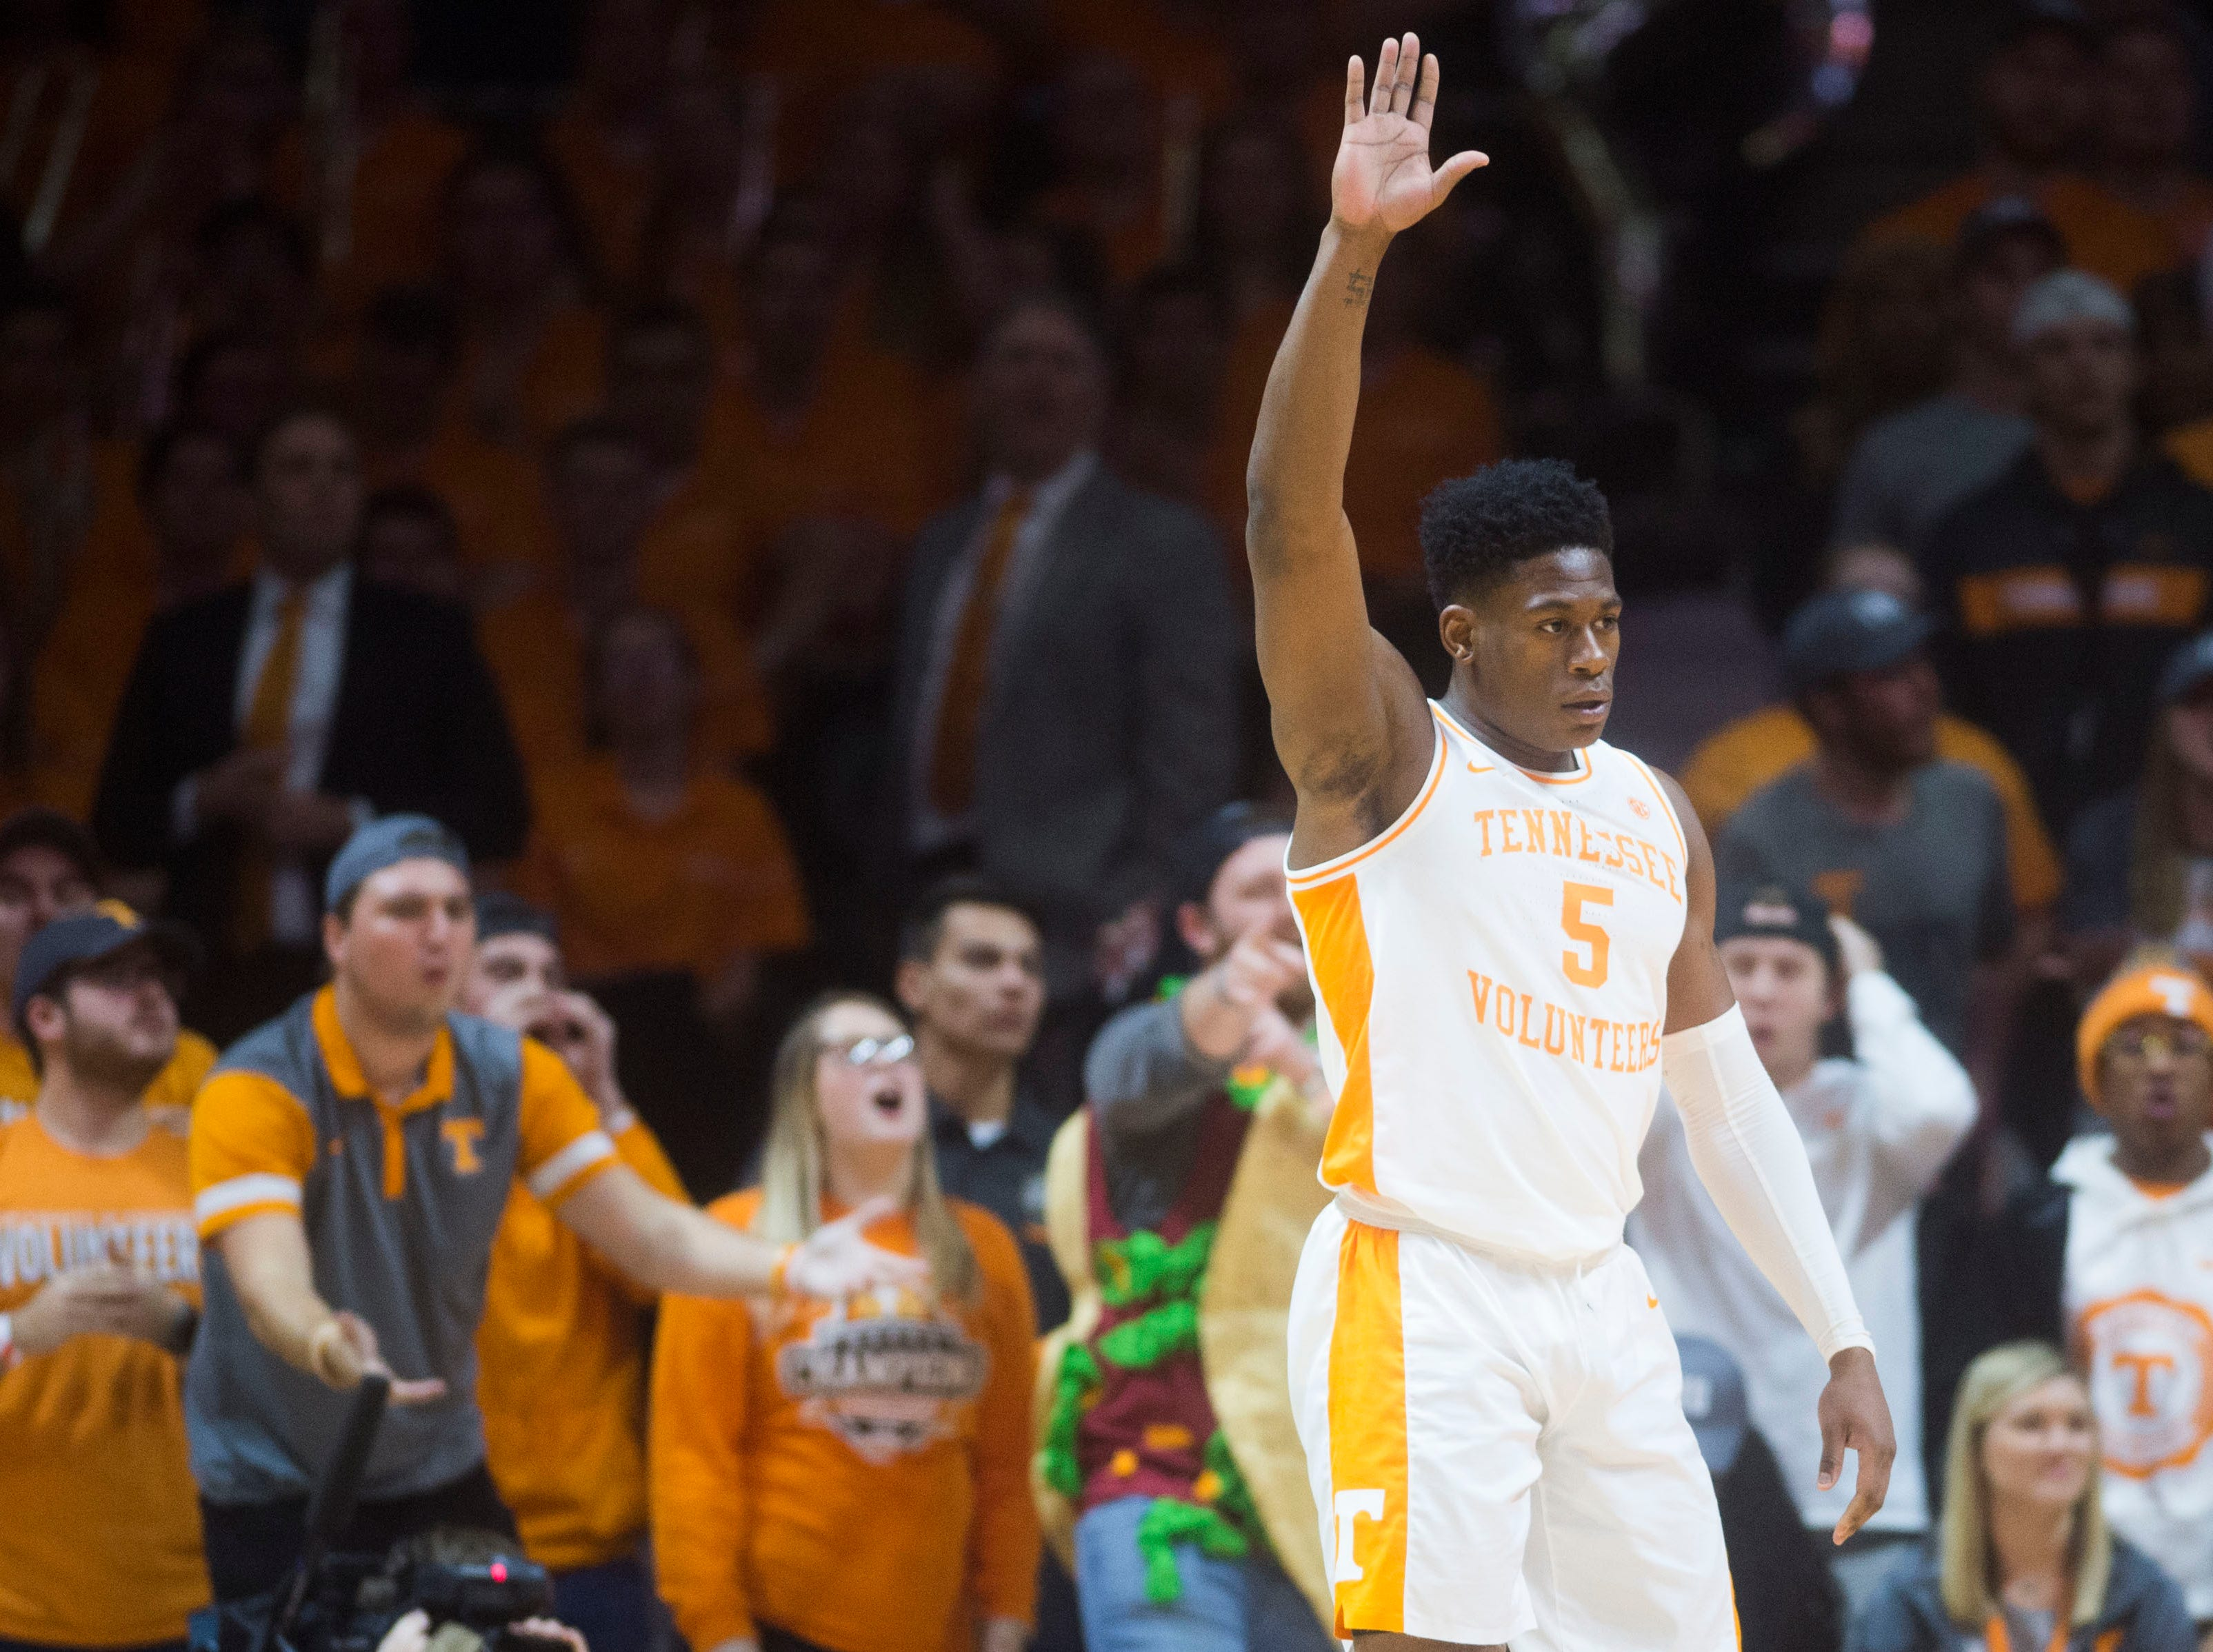 Tennessee's Admiral Schofield (5) disagrees with a call during a NCAA men's basketball game between Tennessee and Arkansas at Thompson-Boling Arena Tuesday, Jan. 15, 2019.